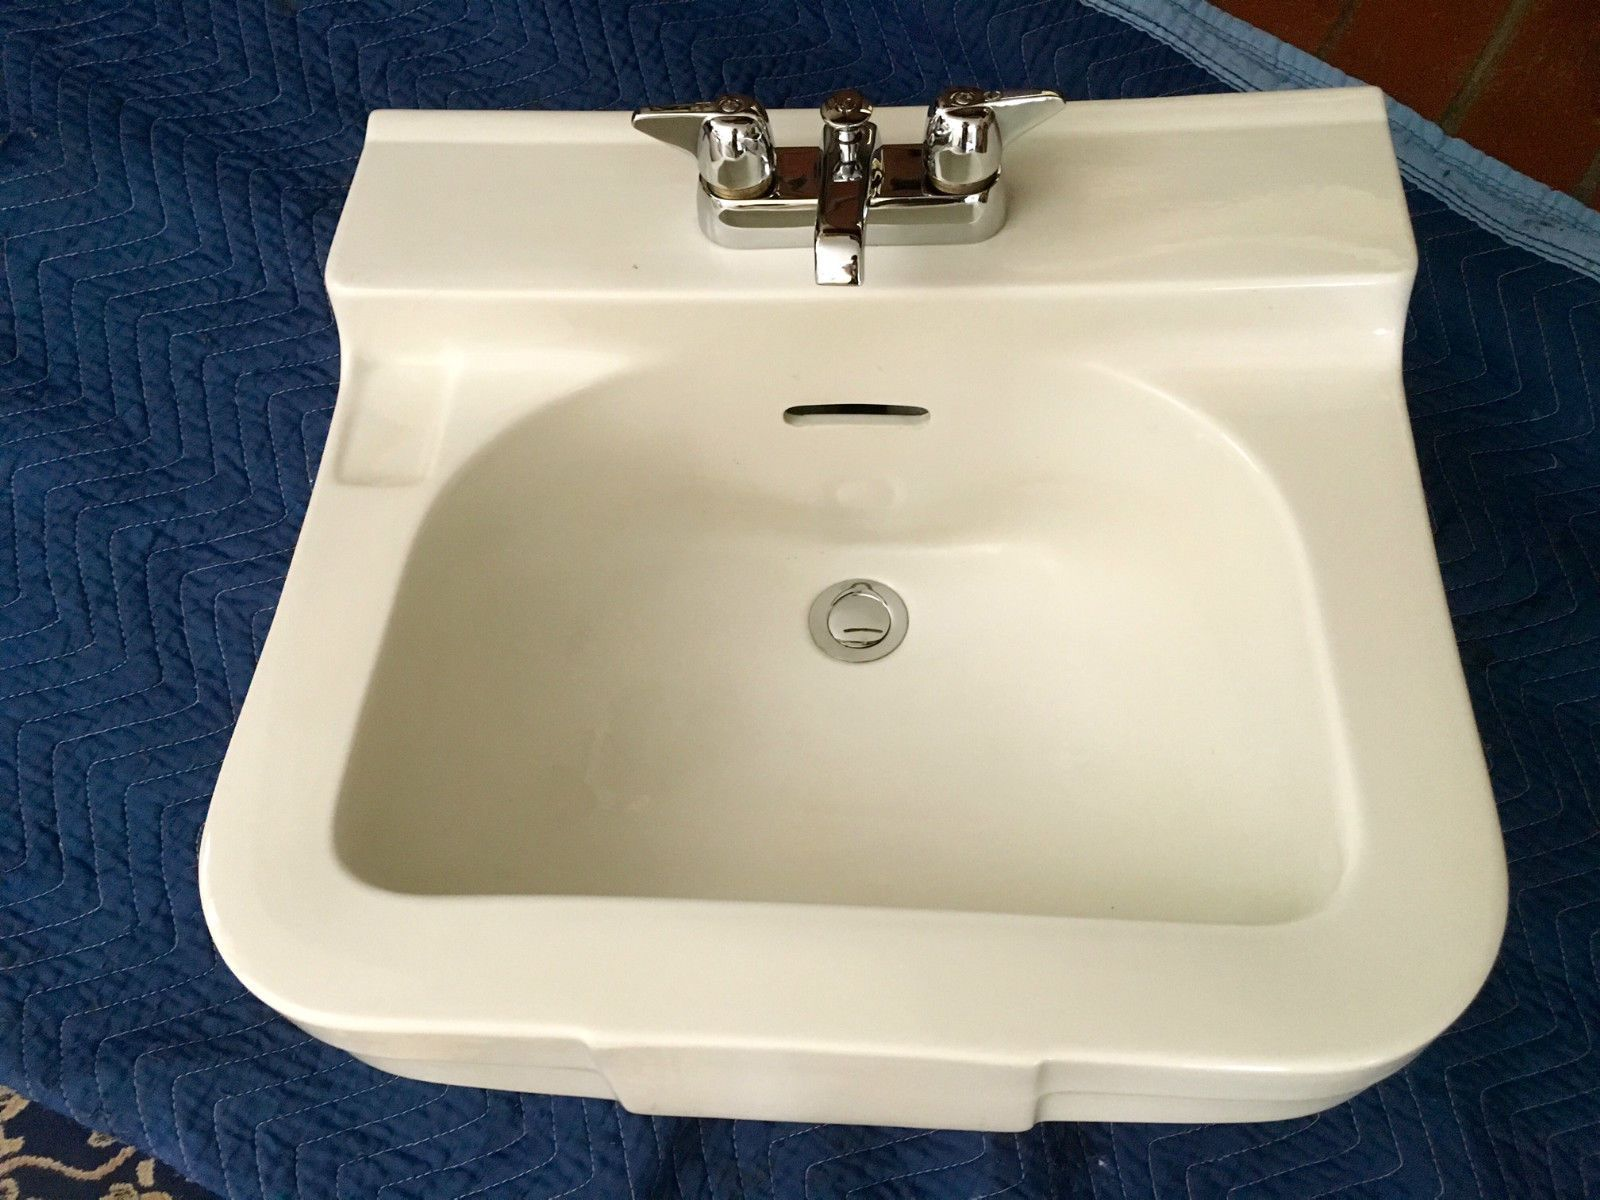 Crane Yorkshire Lavatory Sink And Faucet Lavatory Sink Sink